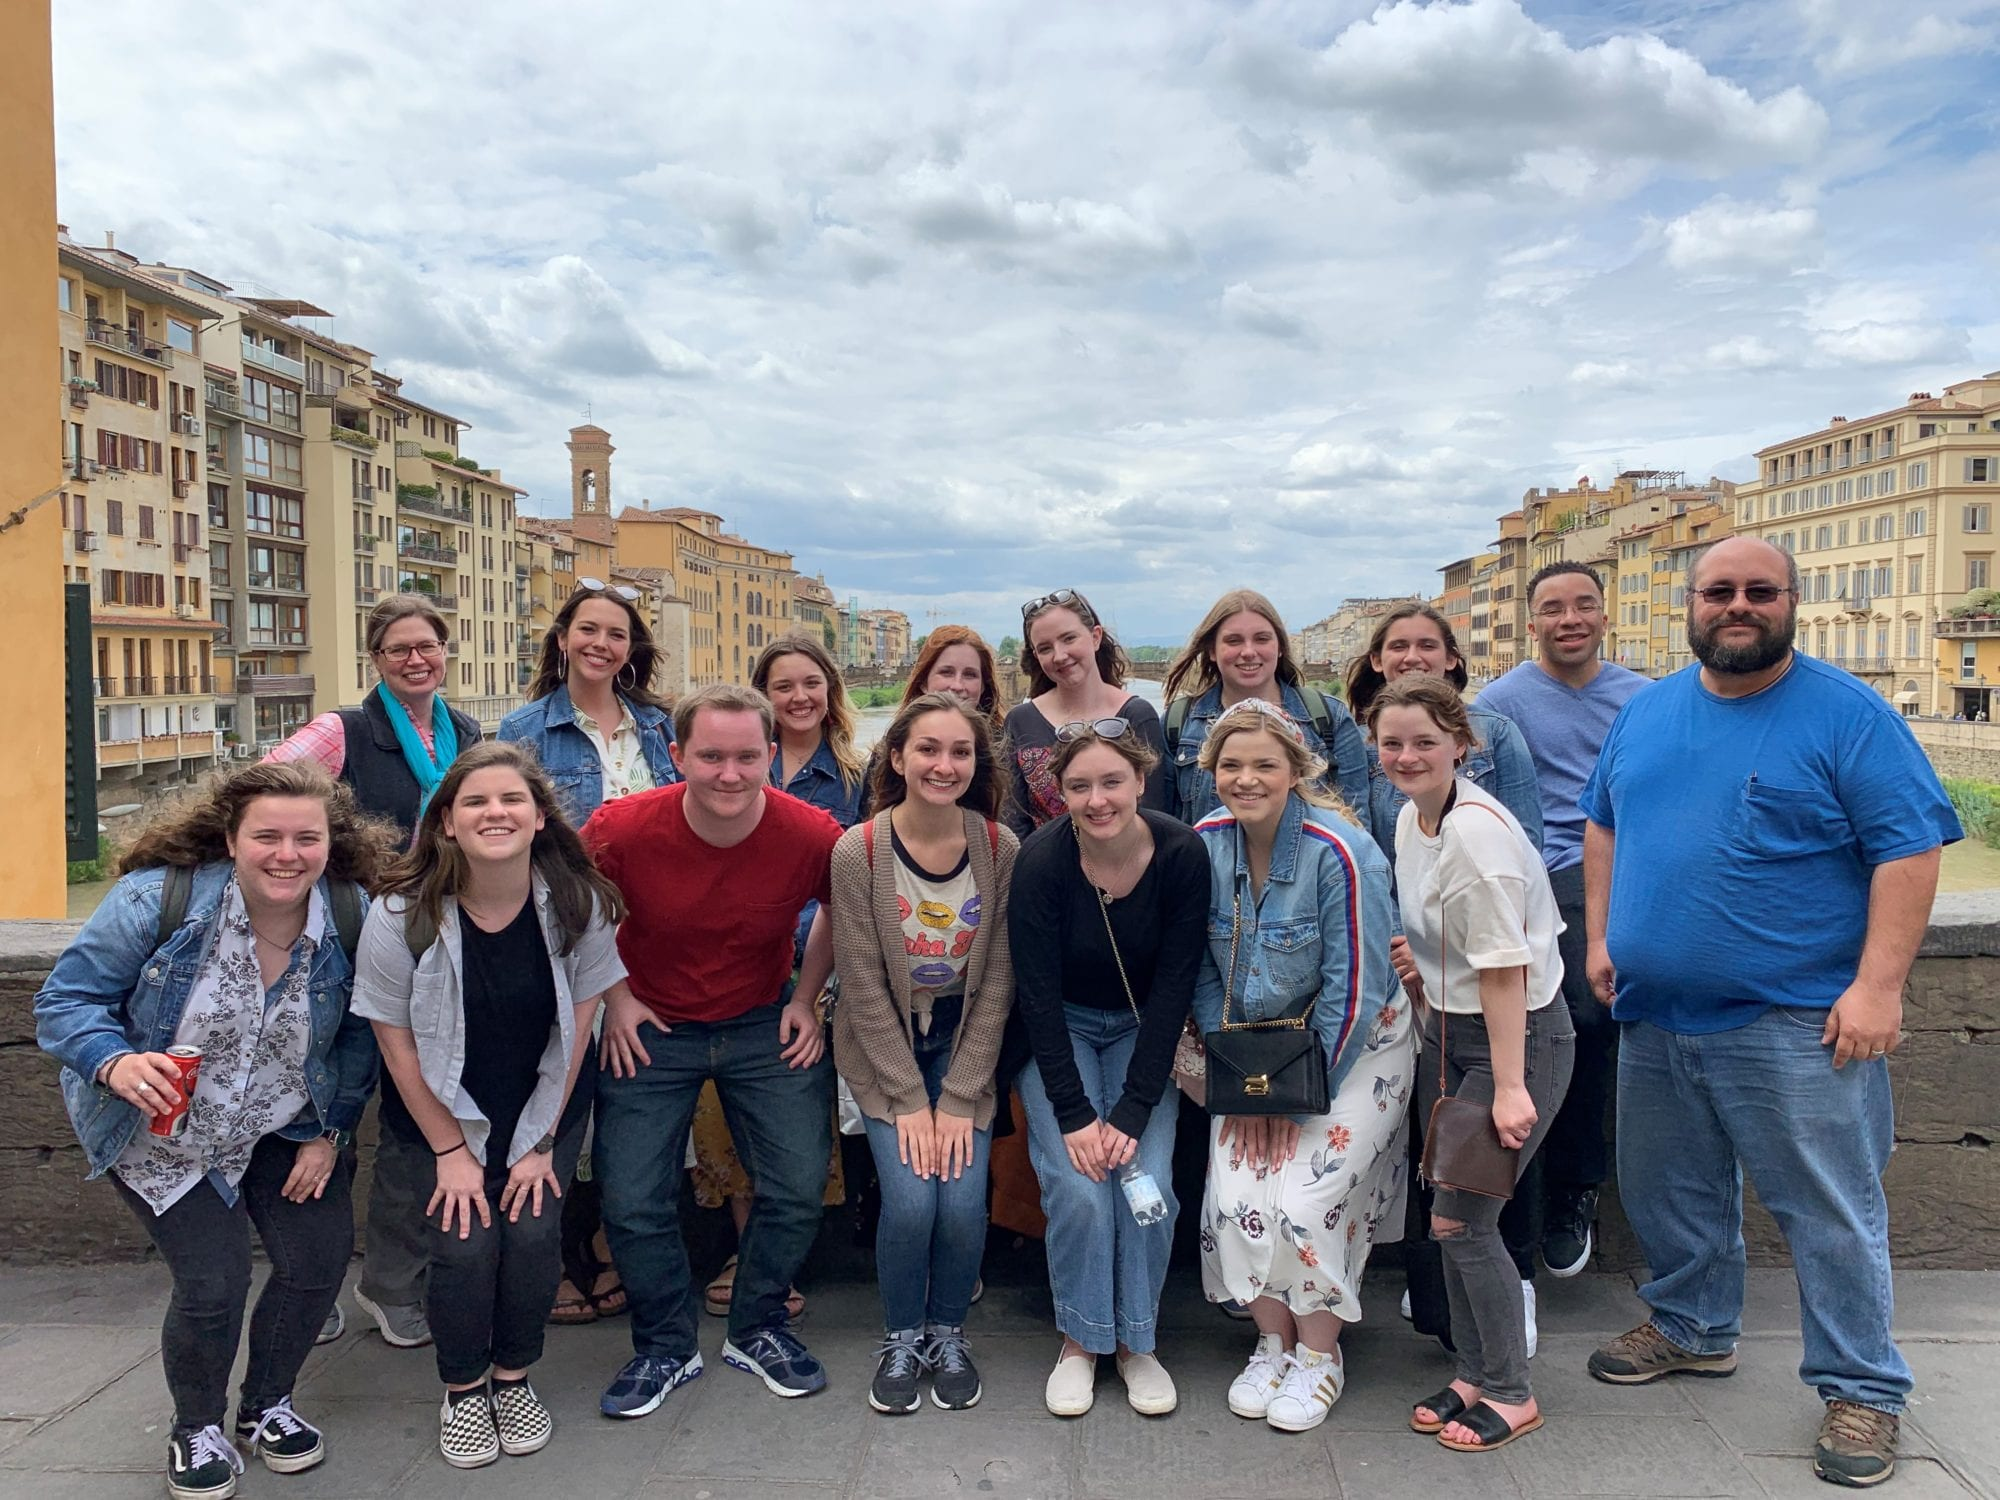 Group Photo of a study abroad trip in Italy